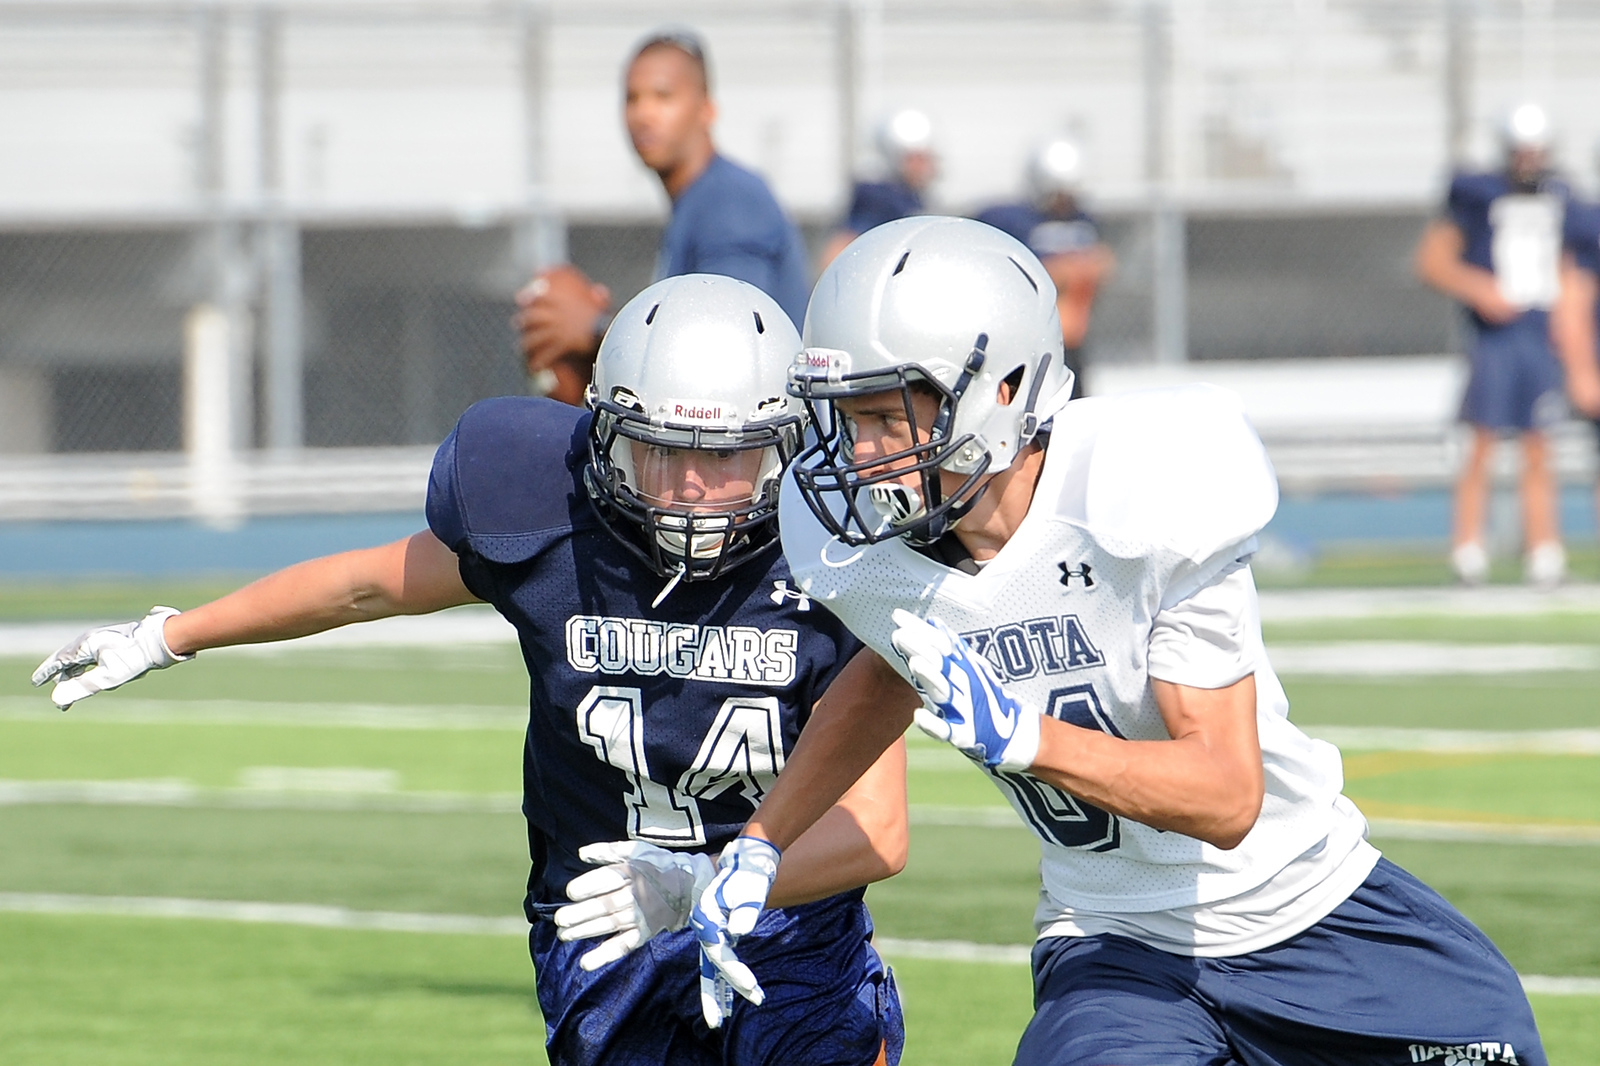 The Dakota High School football team gets ready for the 2017 season. THE MACOMB DAILY PHOTO GALLERY BY DAVID DALTON